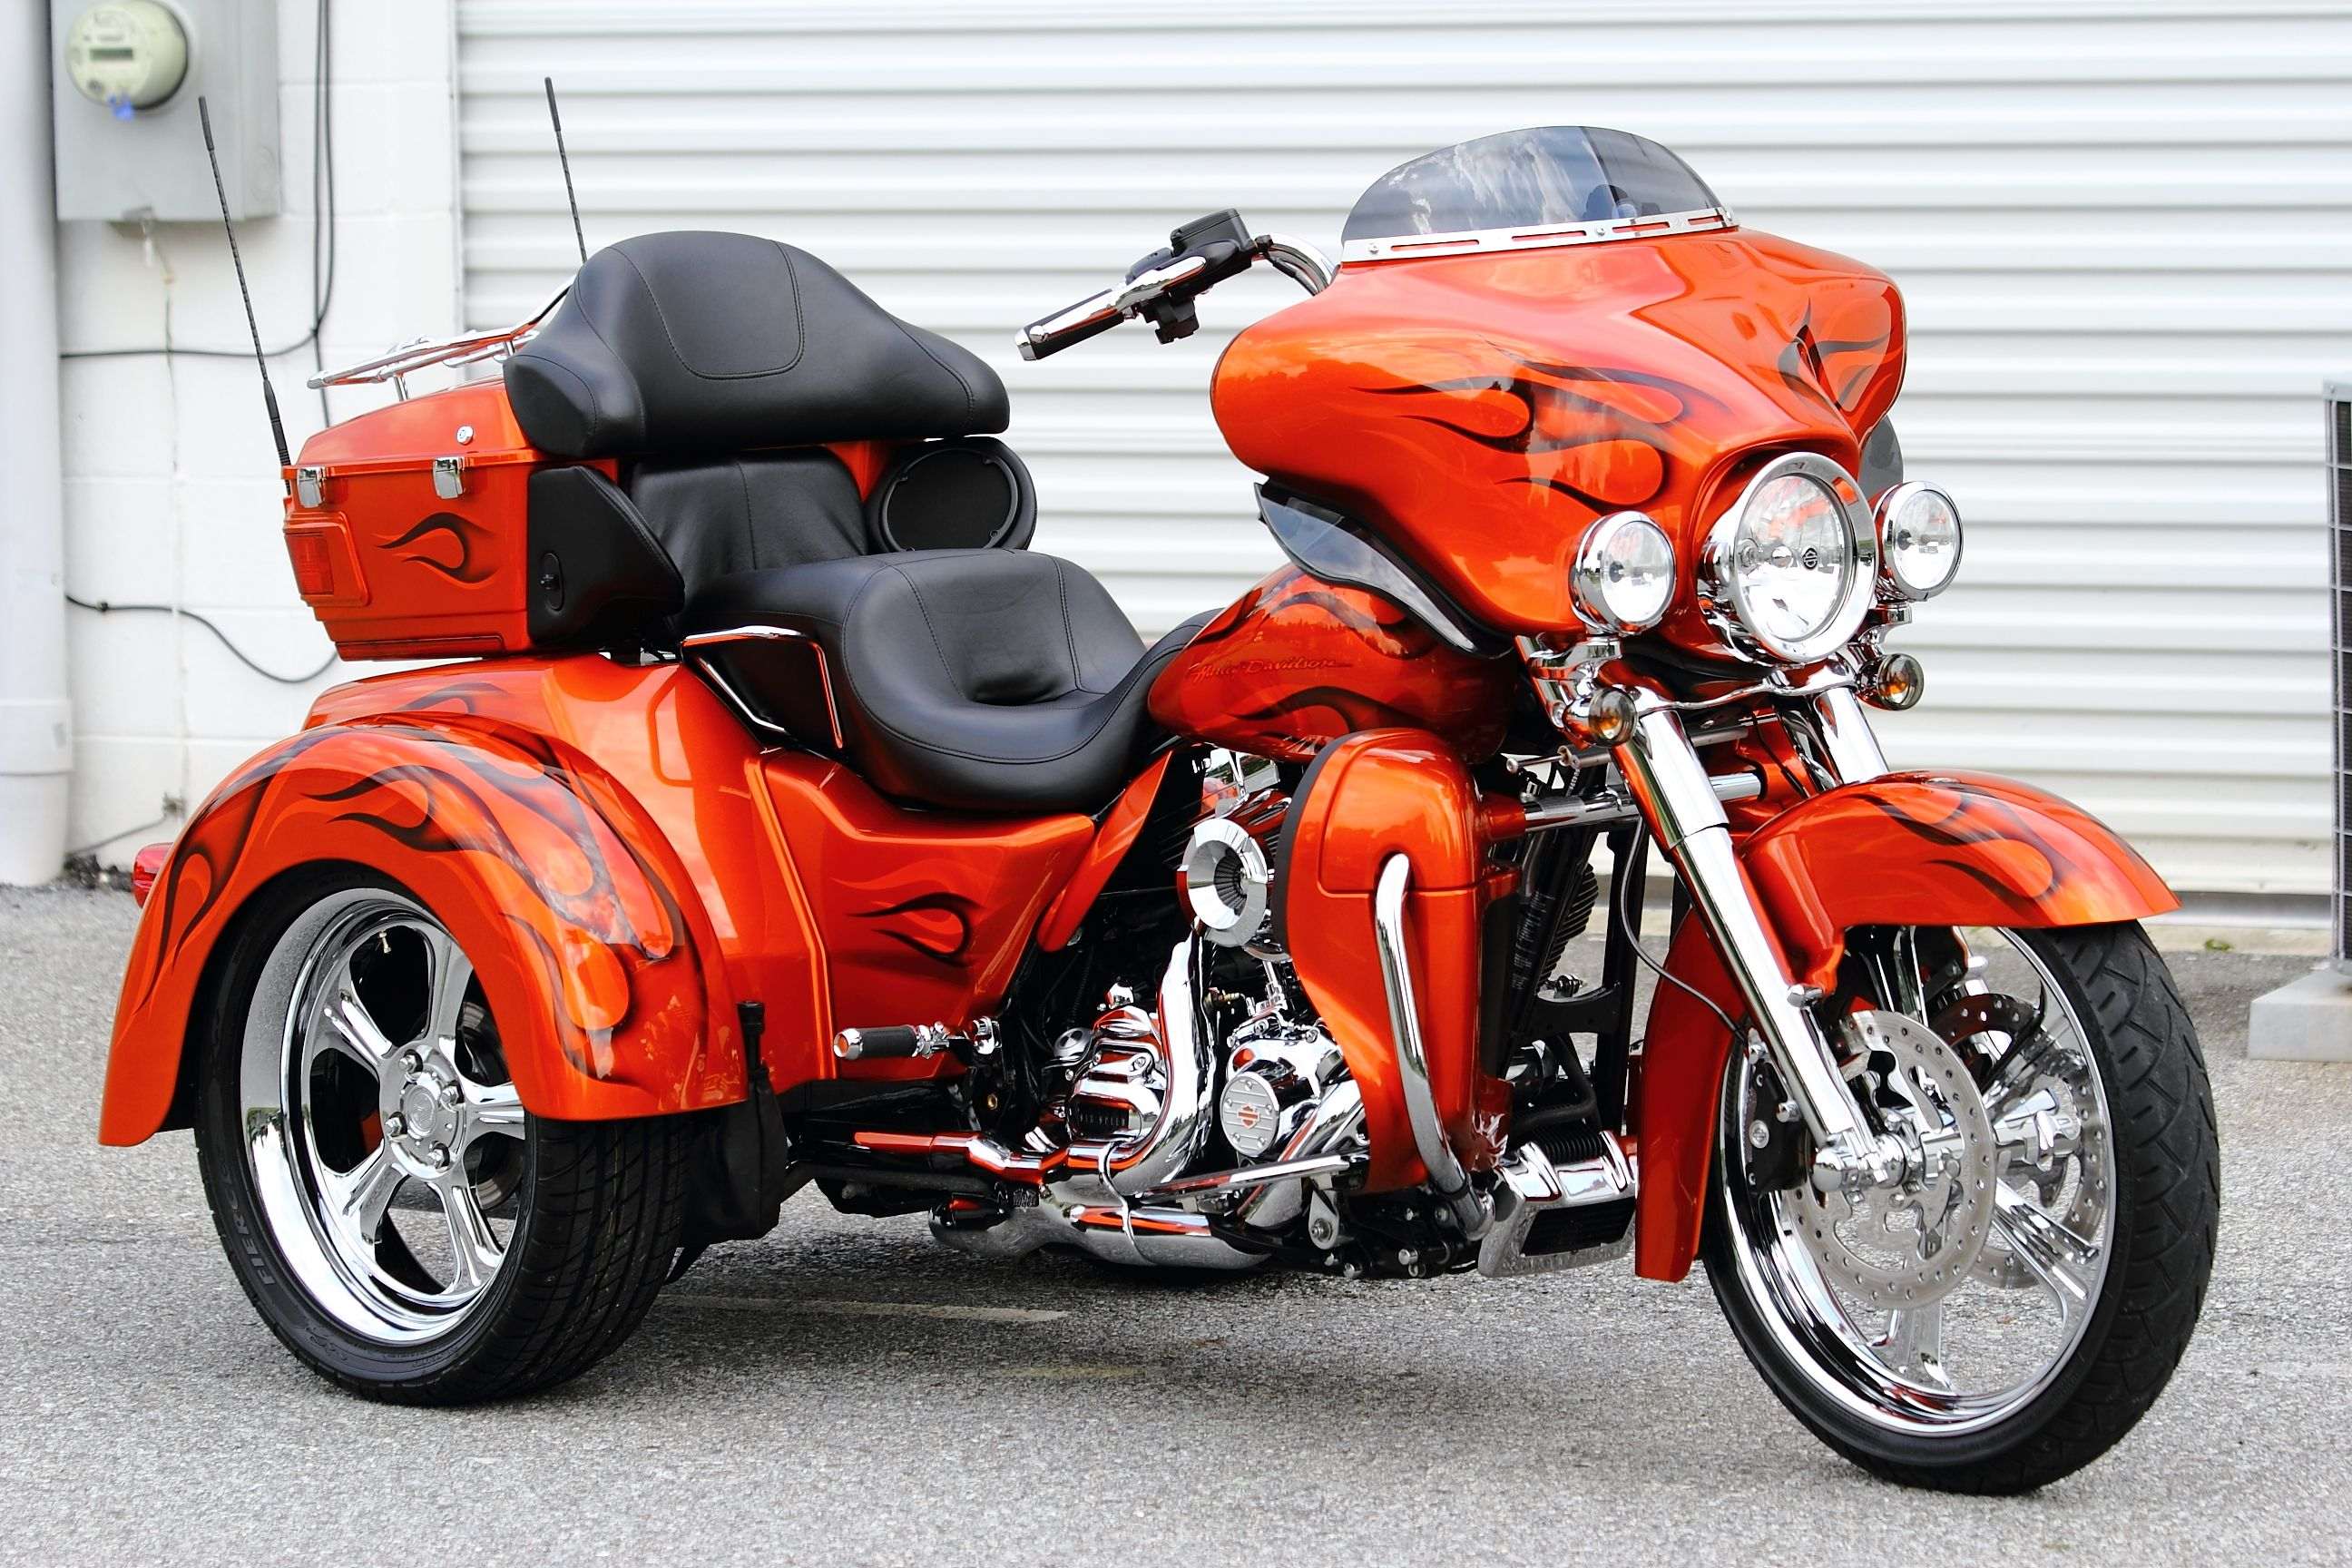 2011 harley davidson custom tri glide harley davidson. Black Bedroom Furniture Sets. Home Design Ideas